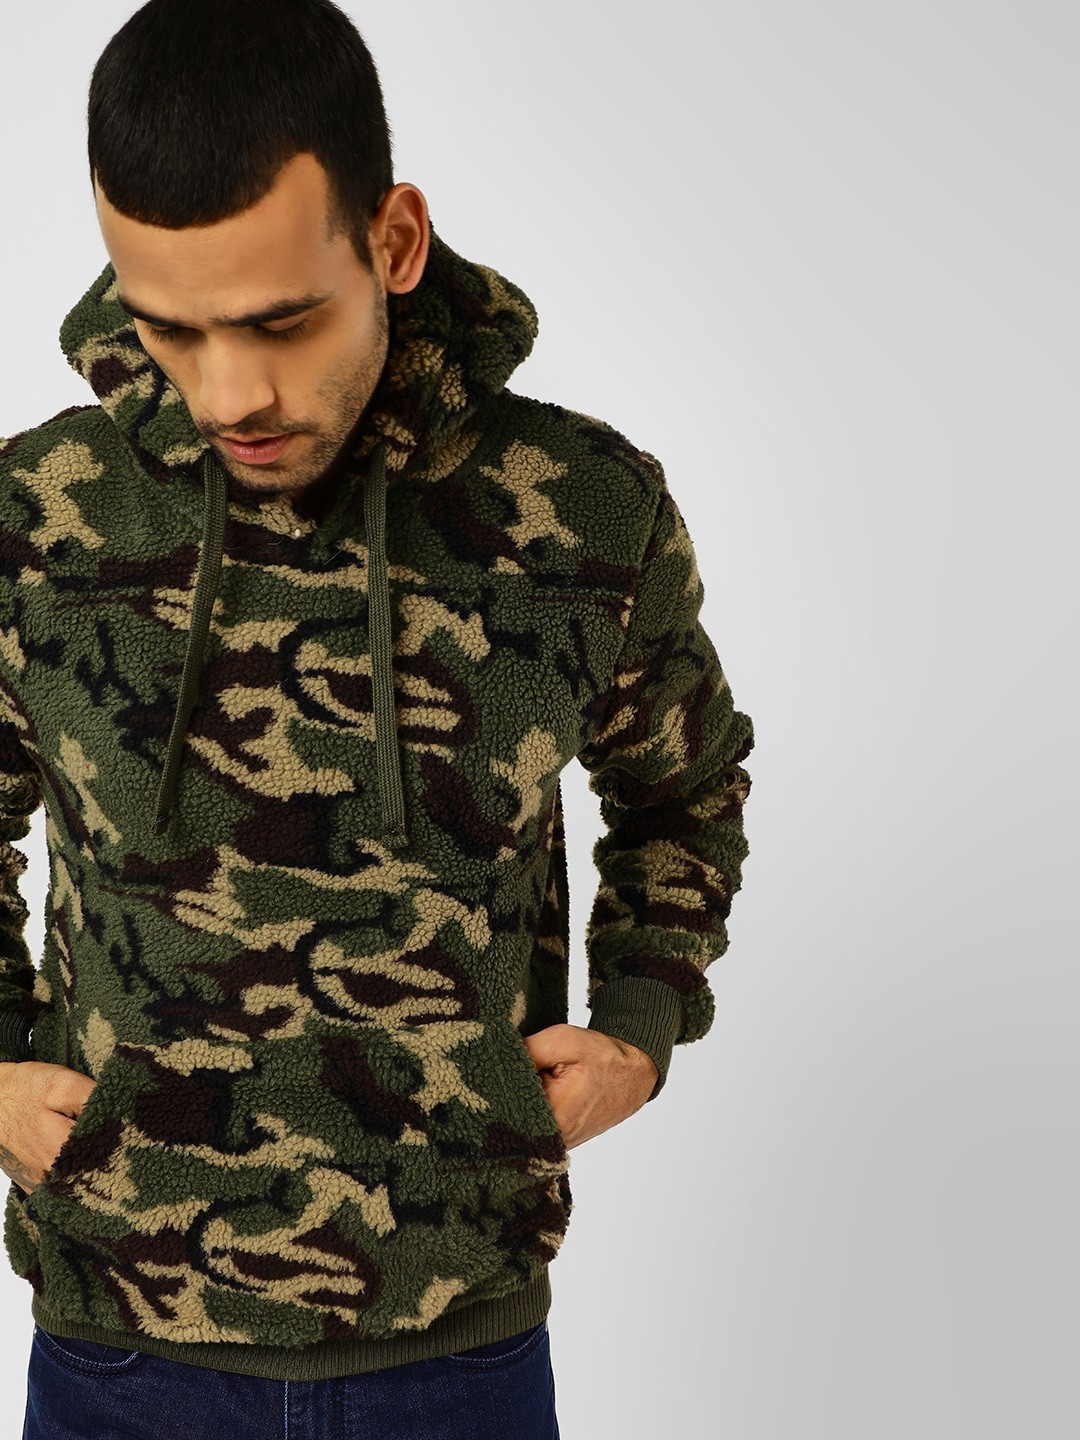 Camo Hoodie India Buy Brave Soul Khakhi Camo Long Sleeve Hoodie For Men Online